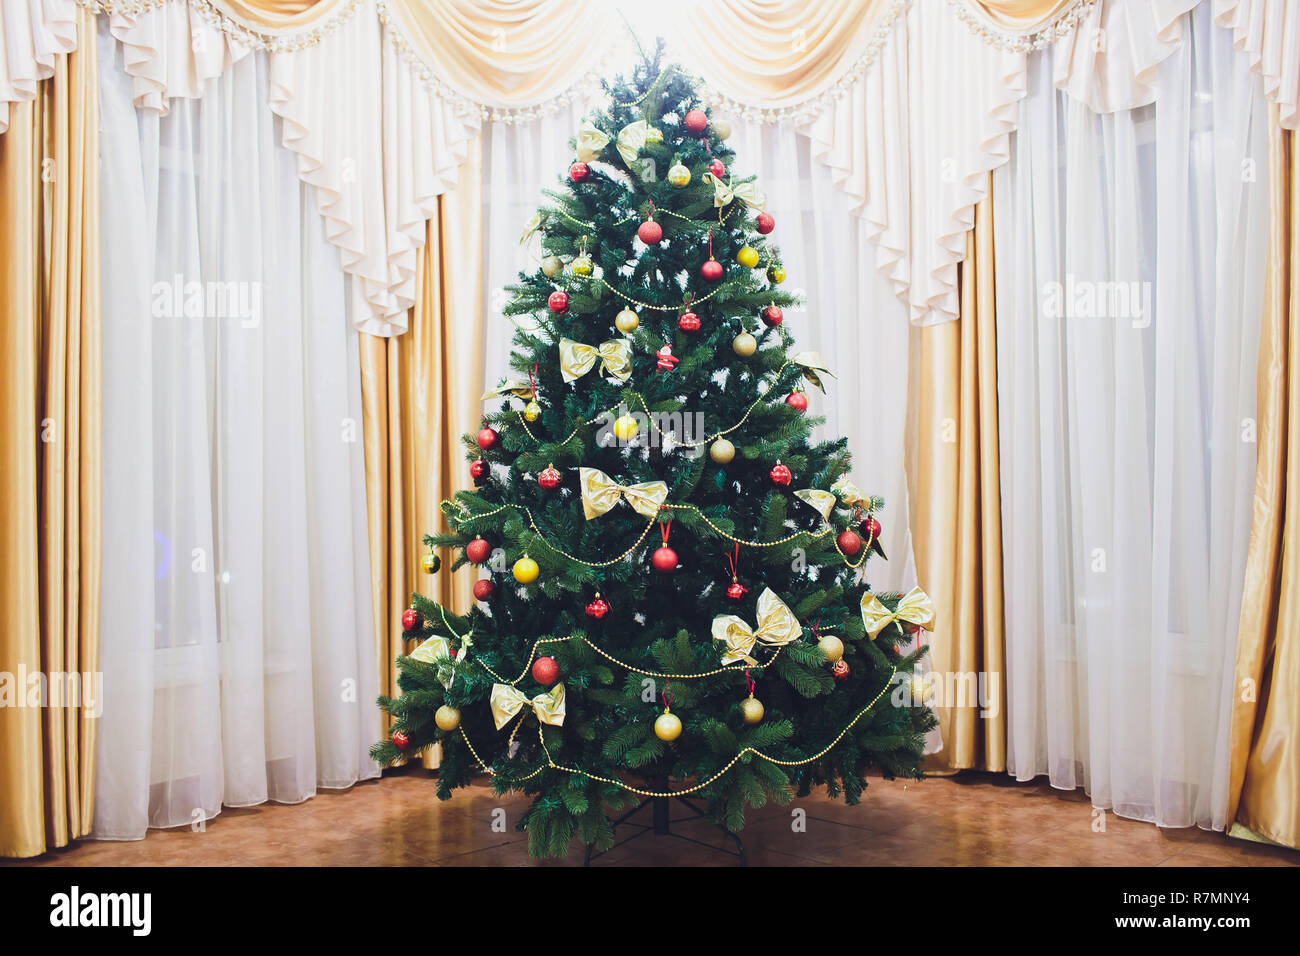 Decorated Christmas room with beautiful fir tree. - Stock Image